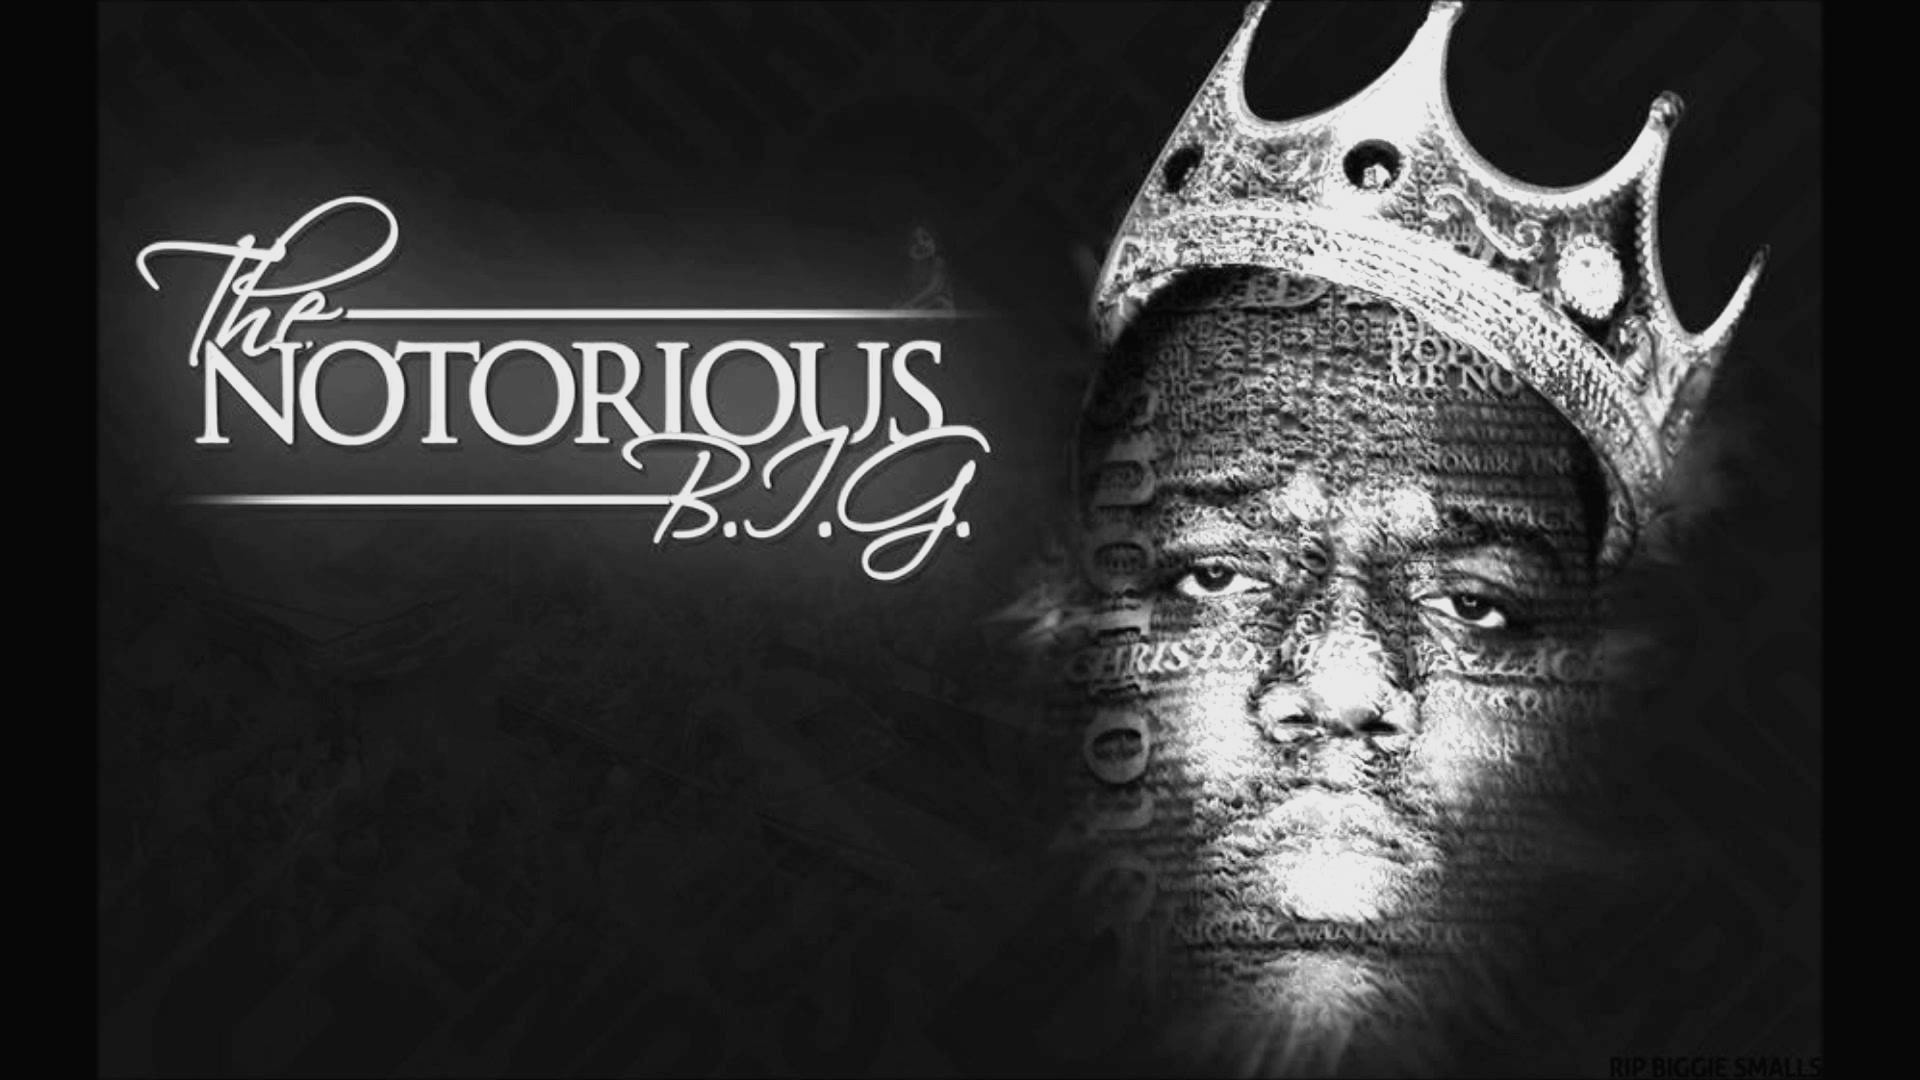 … notorious big wallpapers hd download …